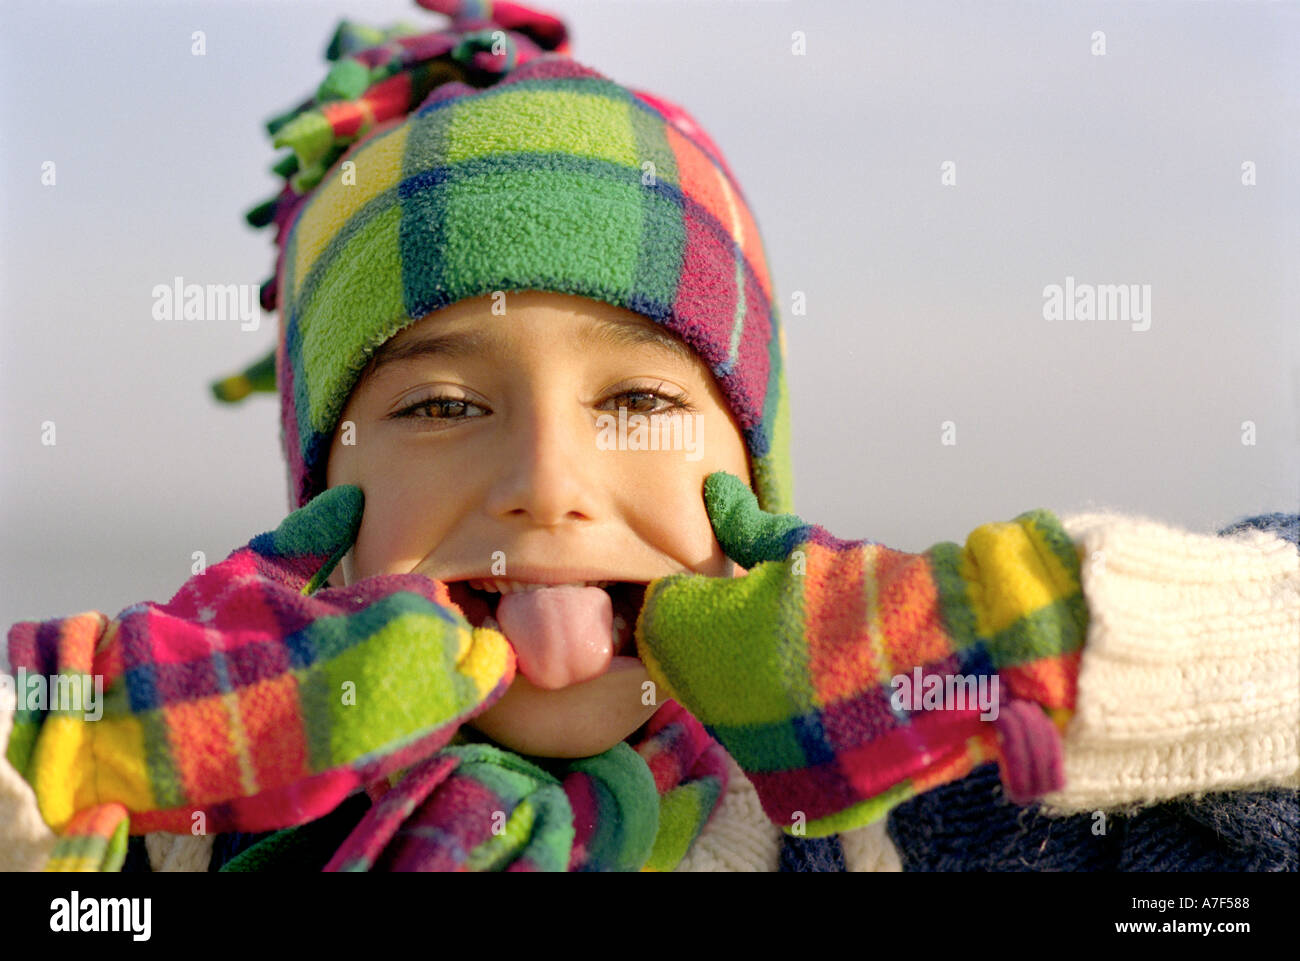 Portrait of cheeky young Indian boy pulling face at camera - Stock Image